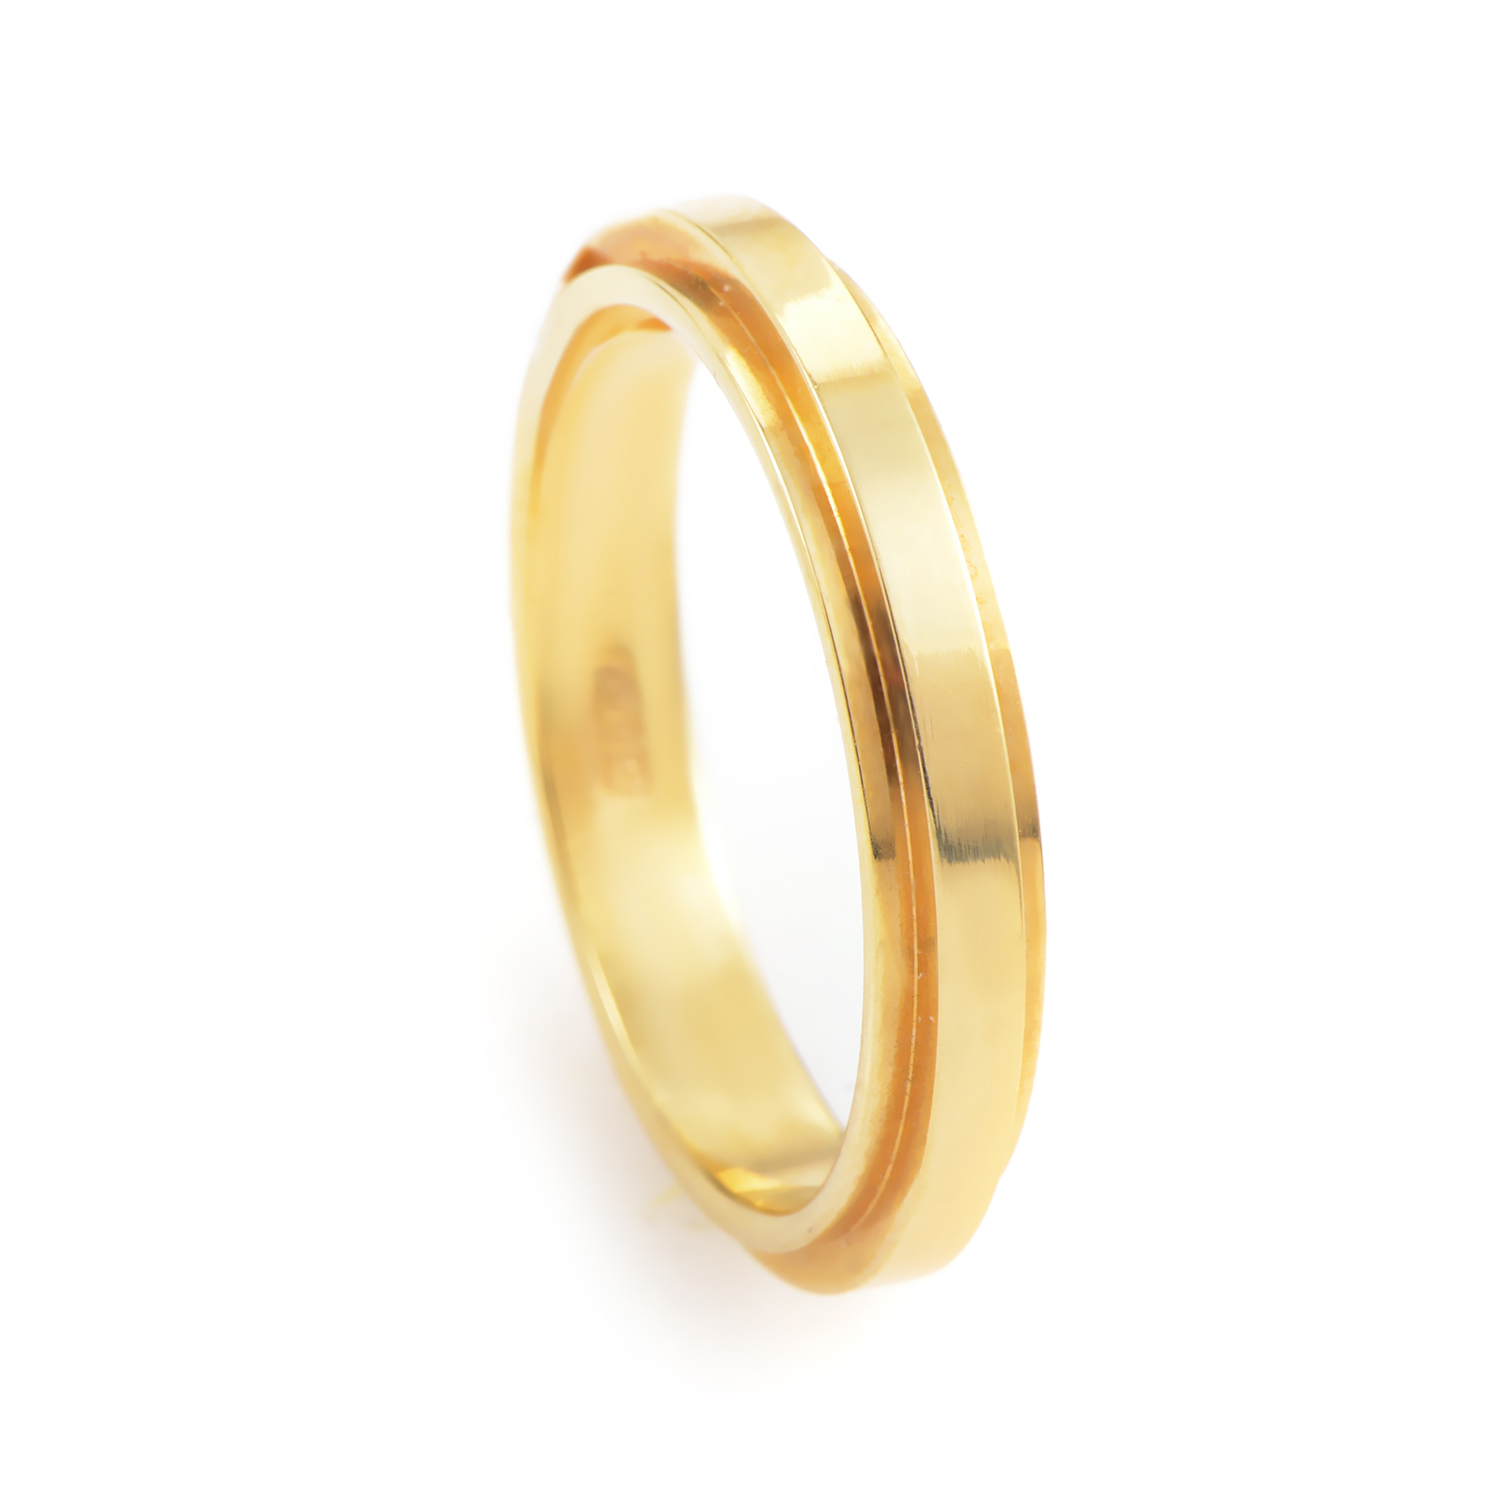 Unisex 18K Yellow Gold Thin Band Ring 02018249